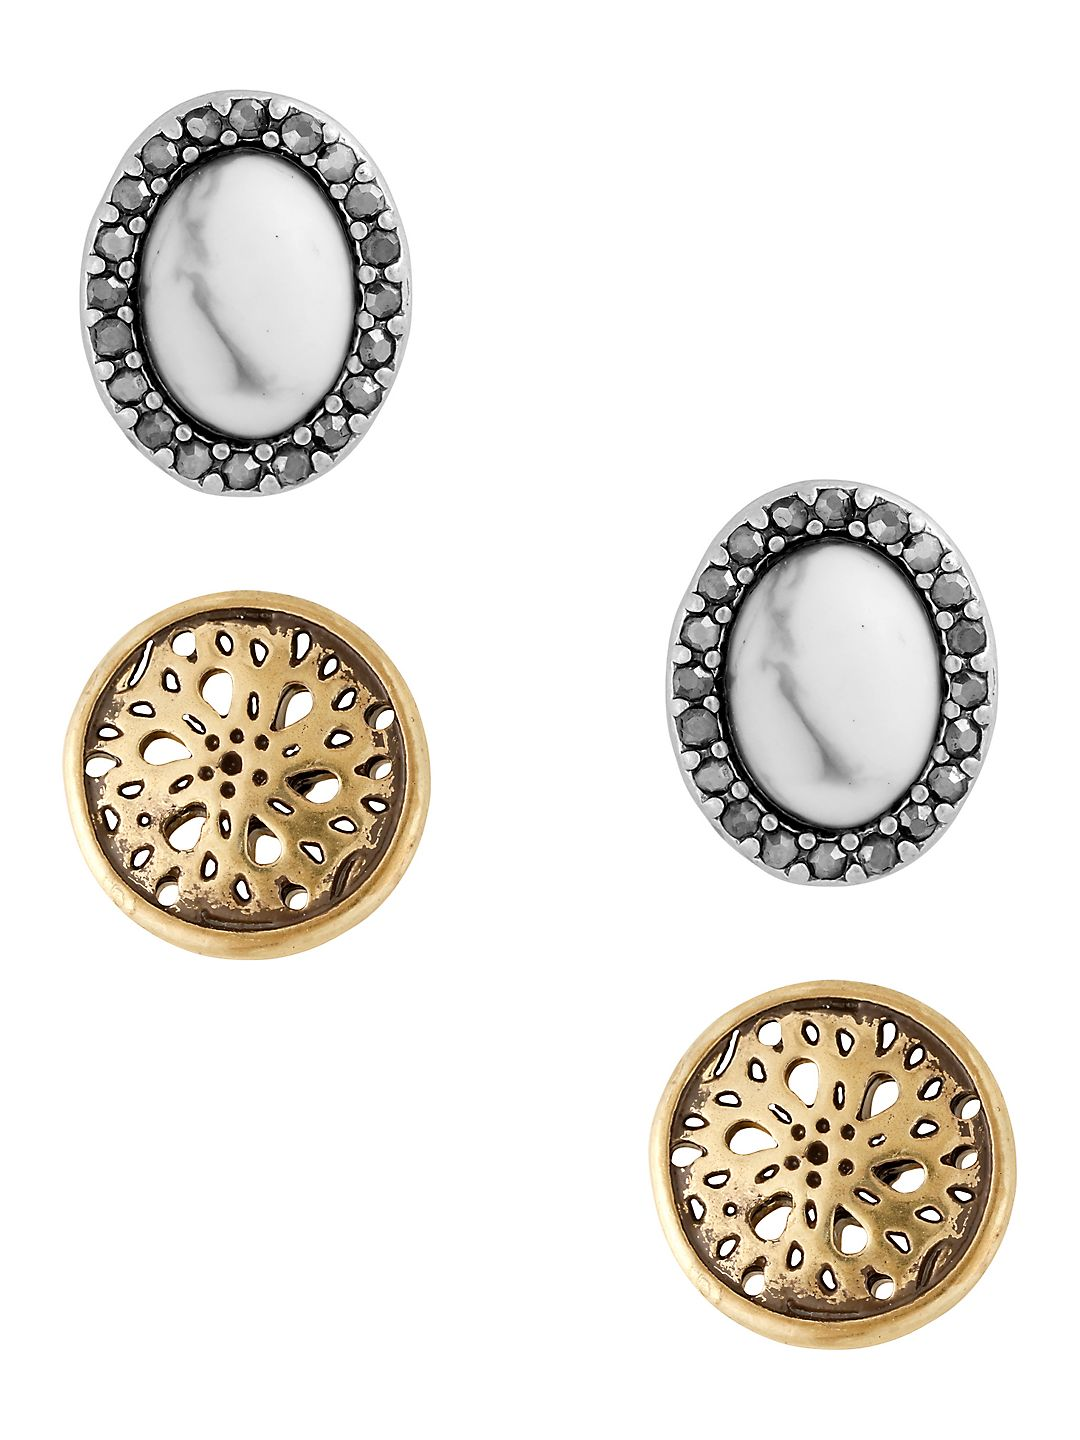 Openwork & Oval Stud Earrings- Set of 2